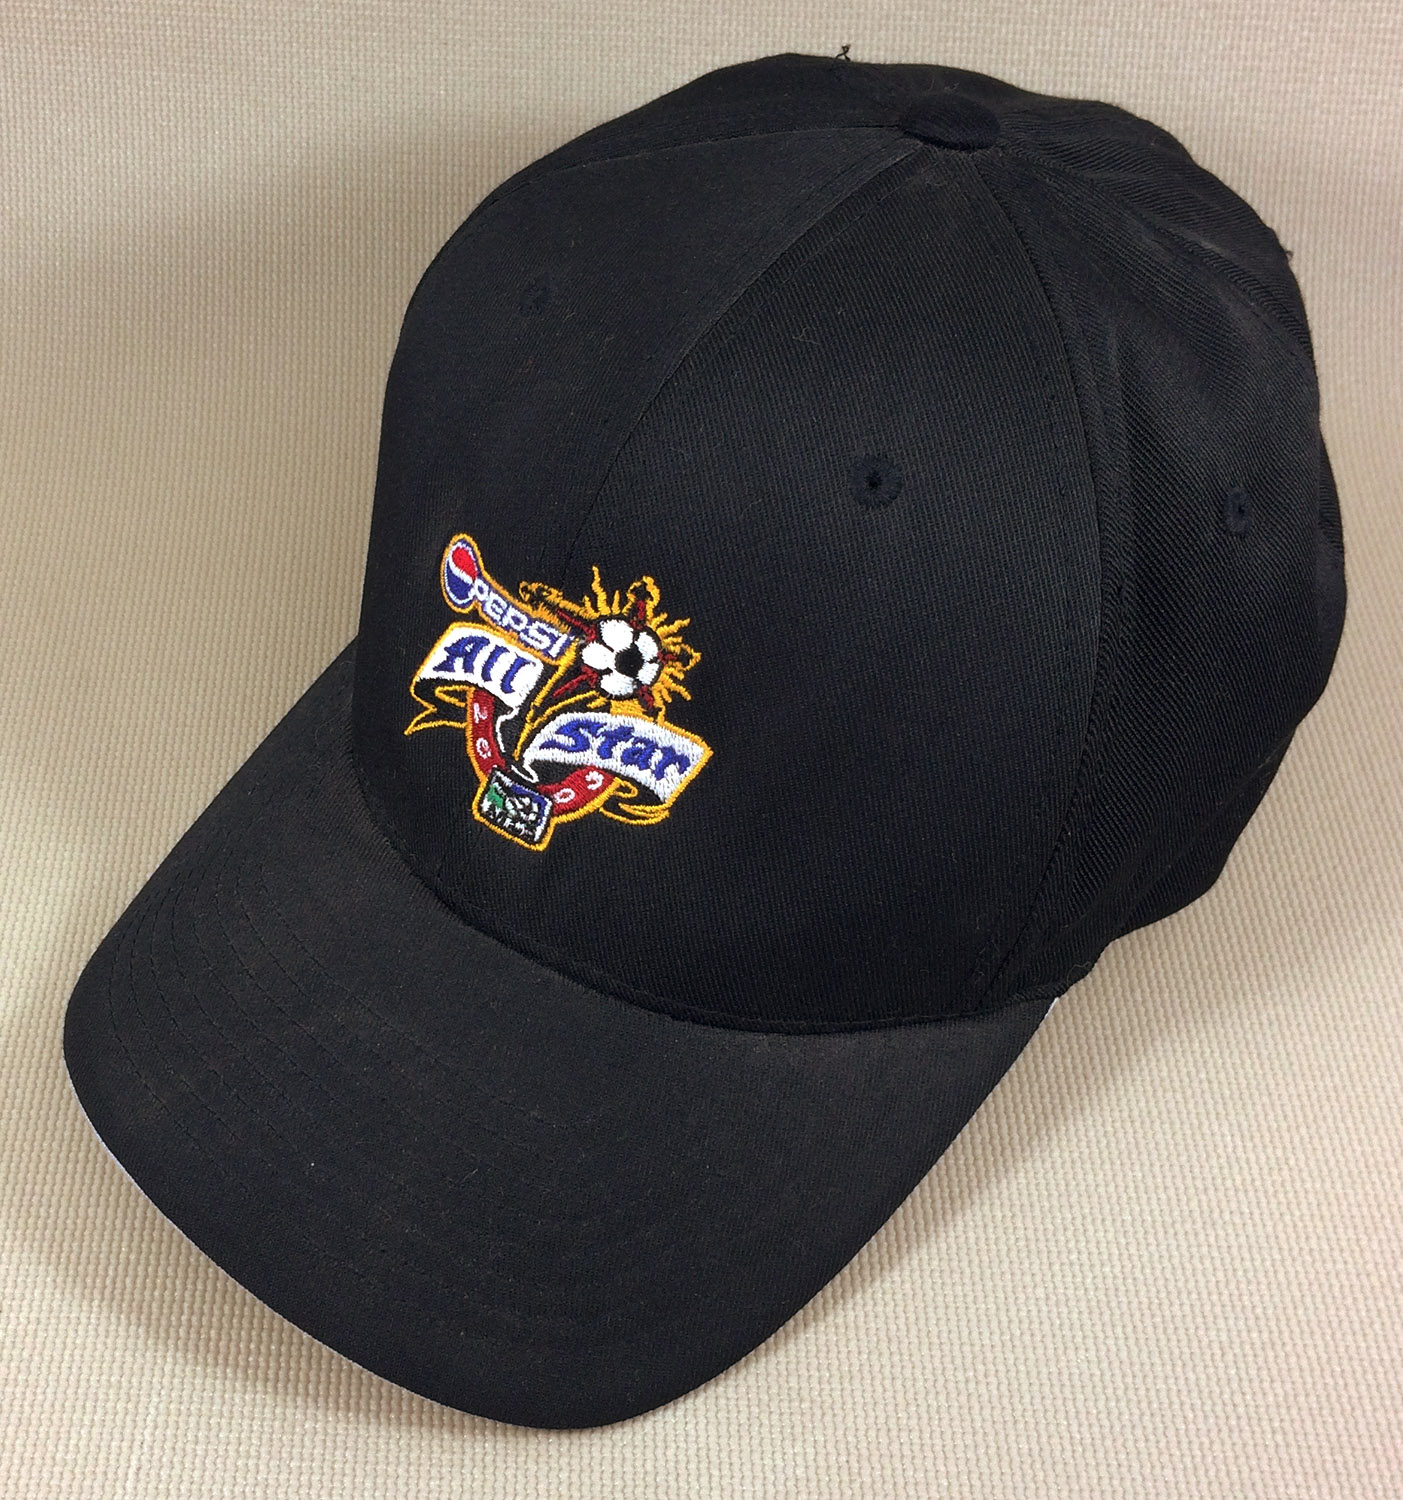 MLS 2003 All-Star Game Cap